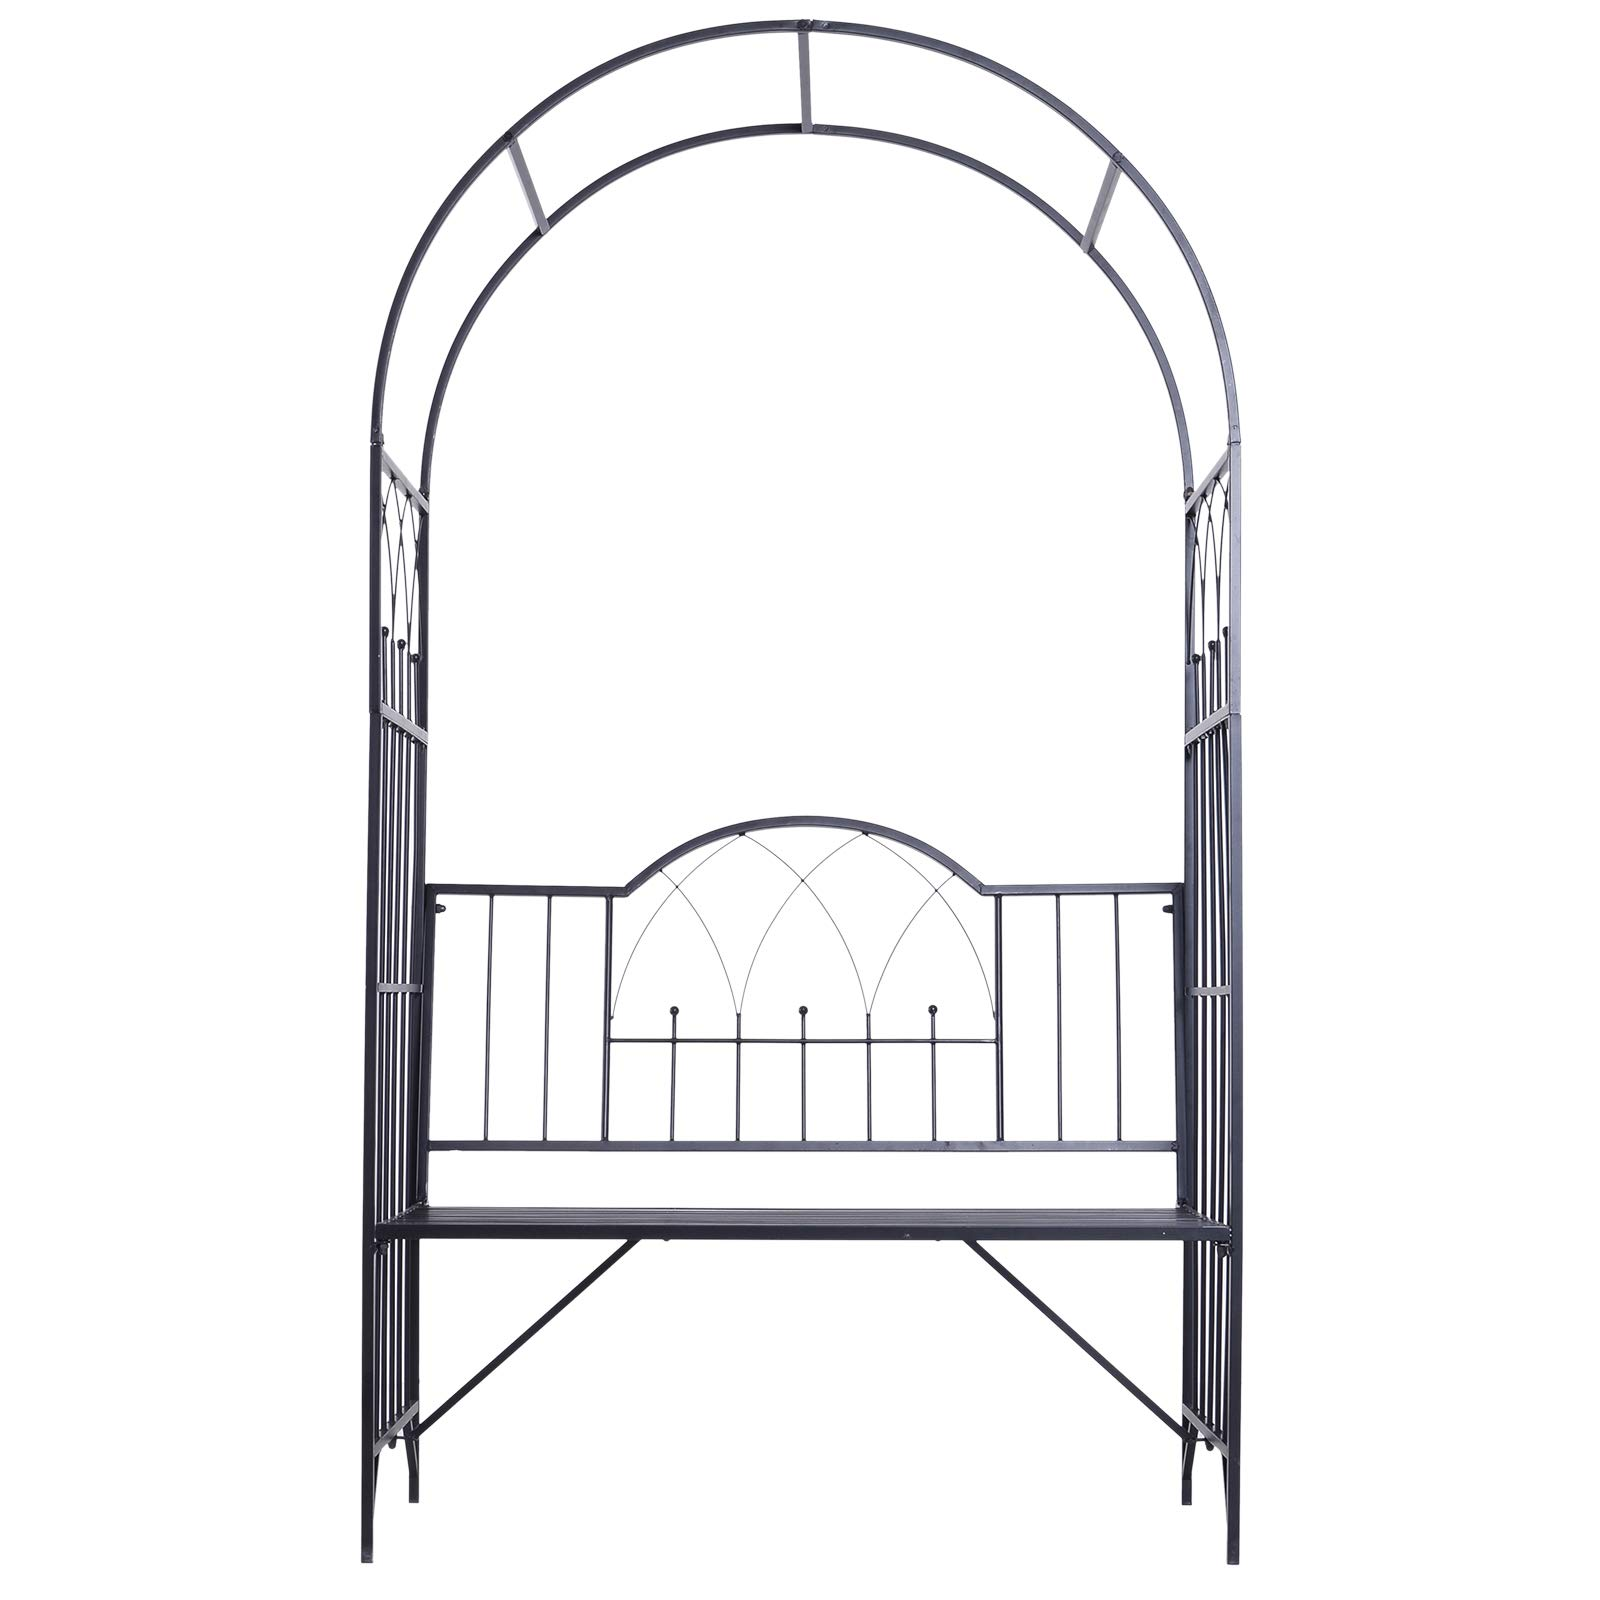 Outsunny Outdoor Garden Arbor Arch Steel Metal with Bench Seat - Black by Outsunny (Image #4)